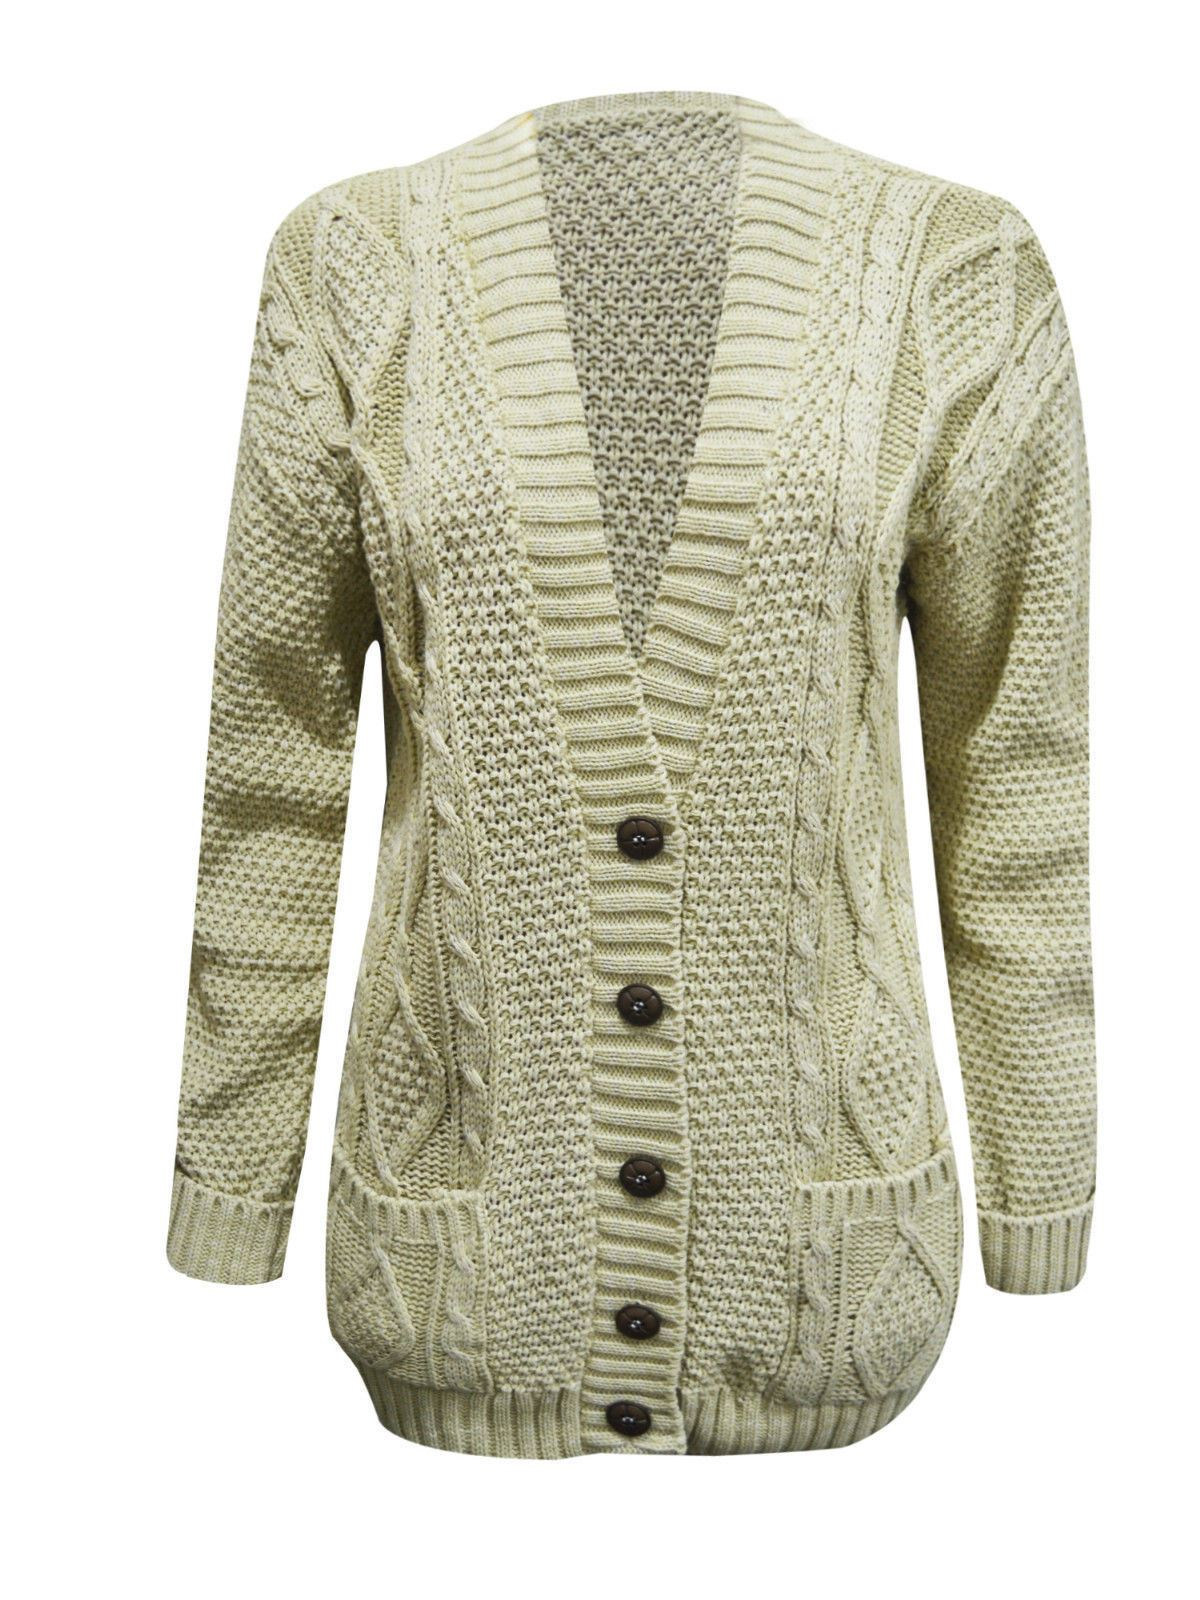 Womens Ladies Casual Cardigan Coat Tops Chunky Knitted Jacket Sweater Jumper USA. Brand New · Unbranded. $ Buy It Now. Free Shipping. SPONSORED. Women Chunky Cardigan High Neck Sweater Long Sleeve Loose Coat Tops Blouse Warm. $ Buy It Now. Free Shipping.